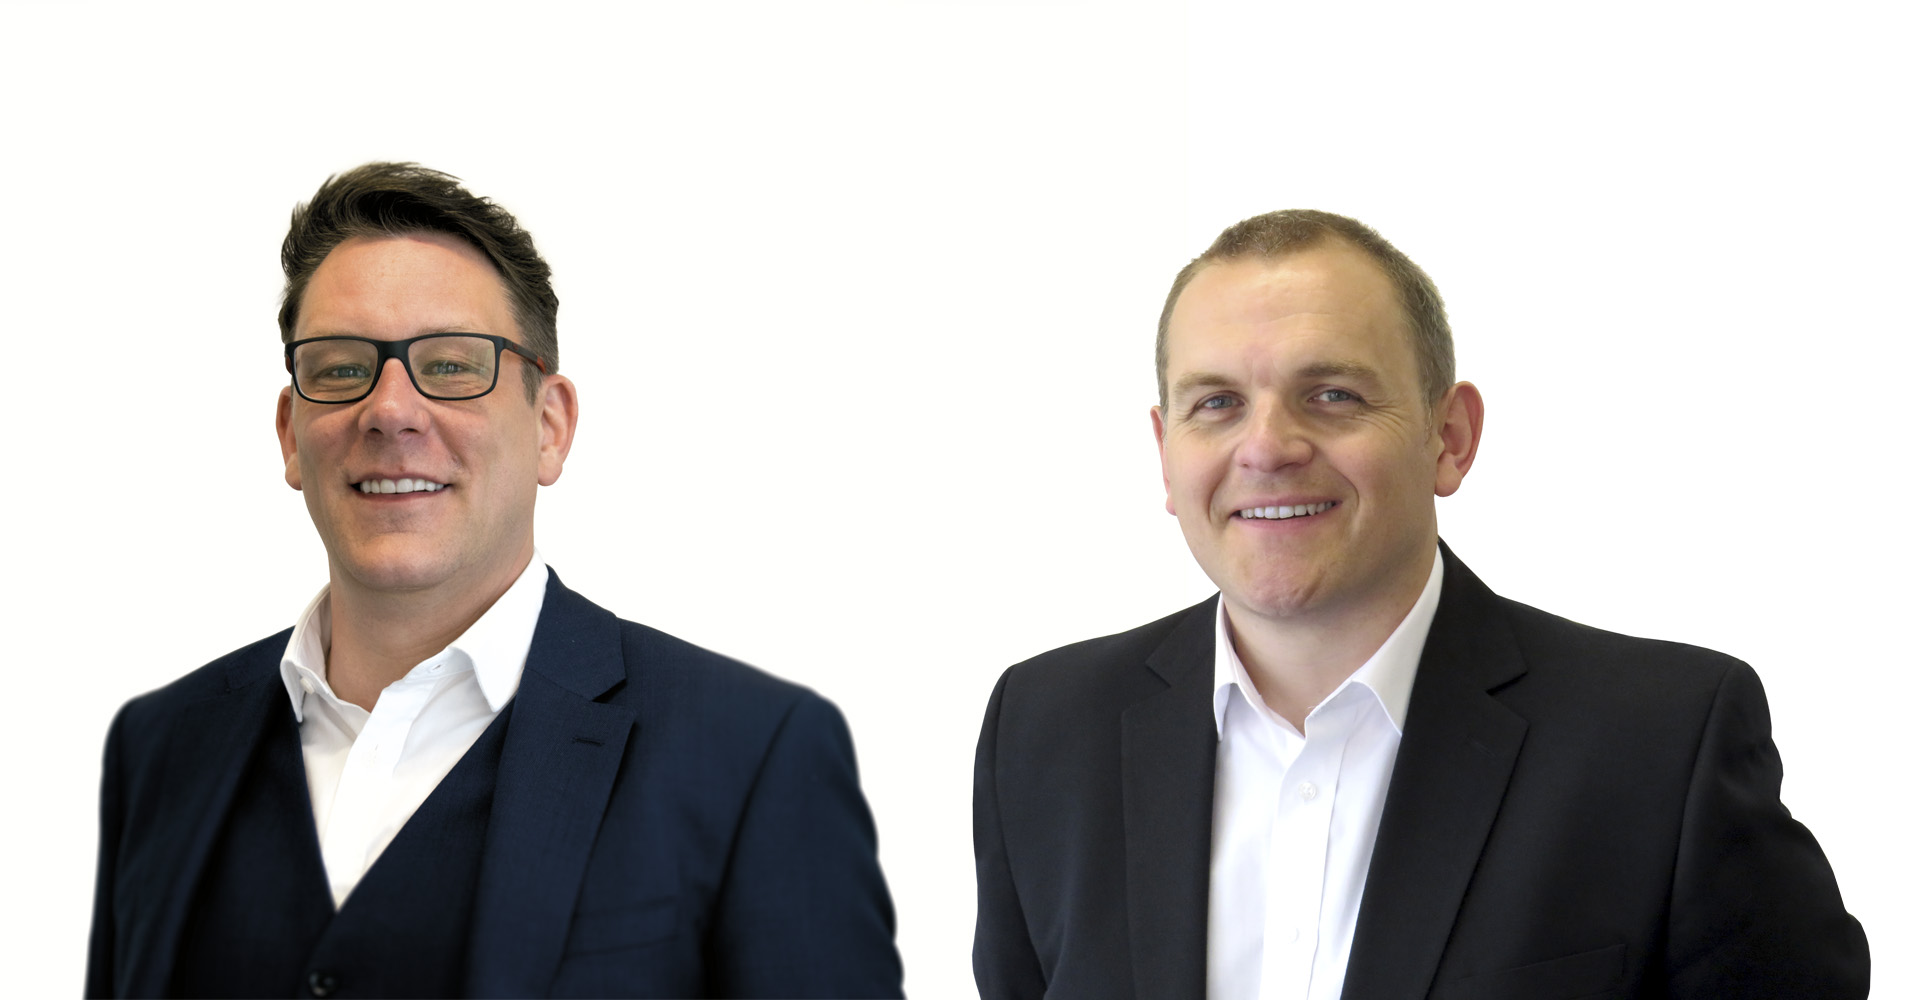 Peter Montague and Dougie Evans become Chartered Fellows